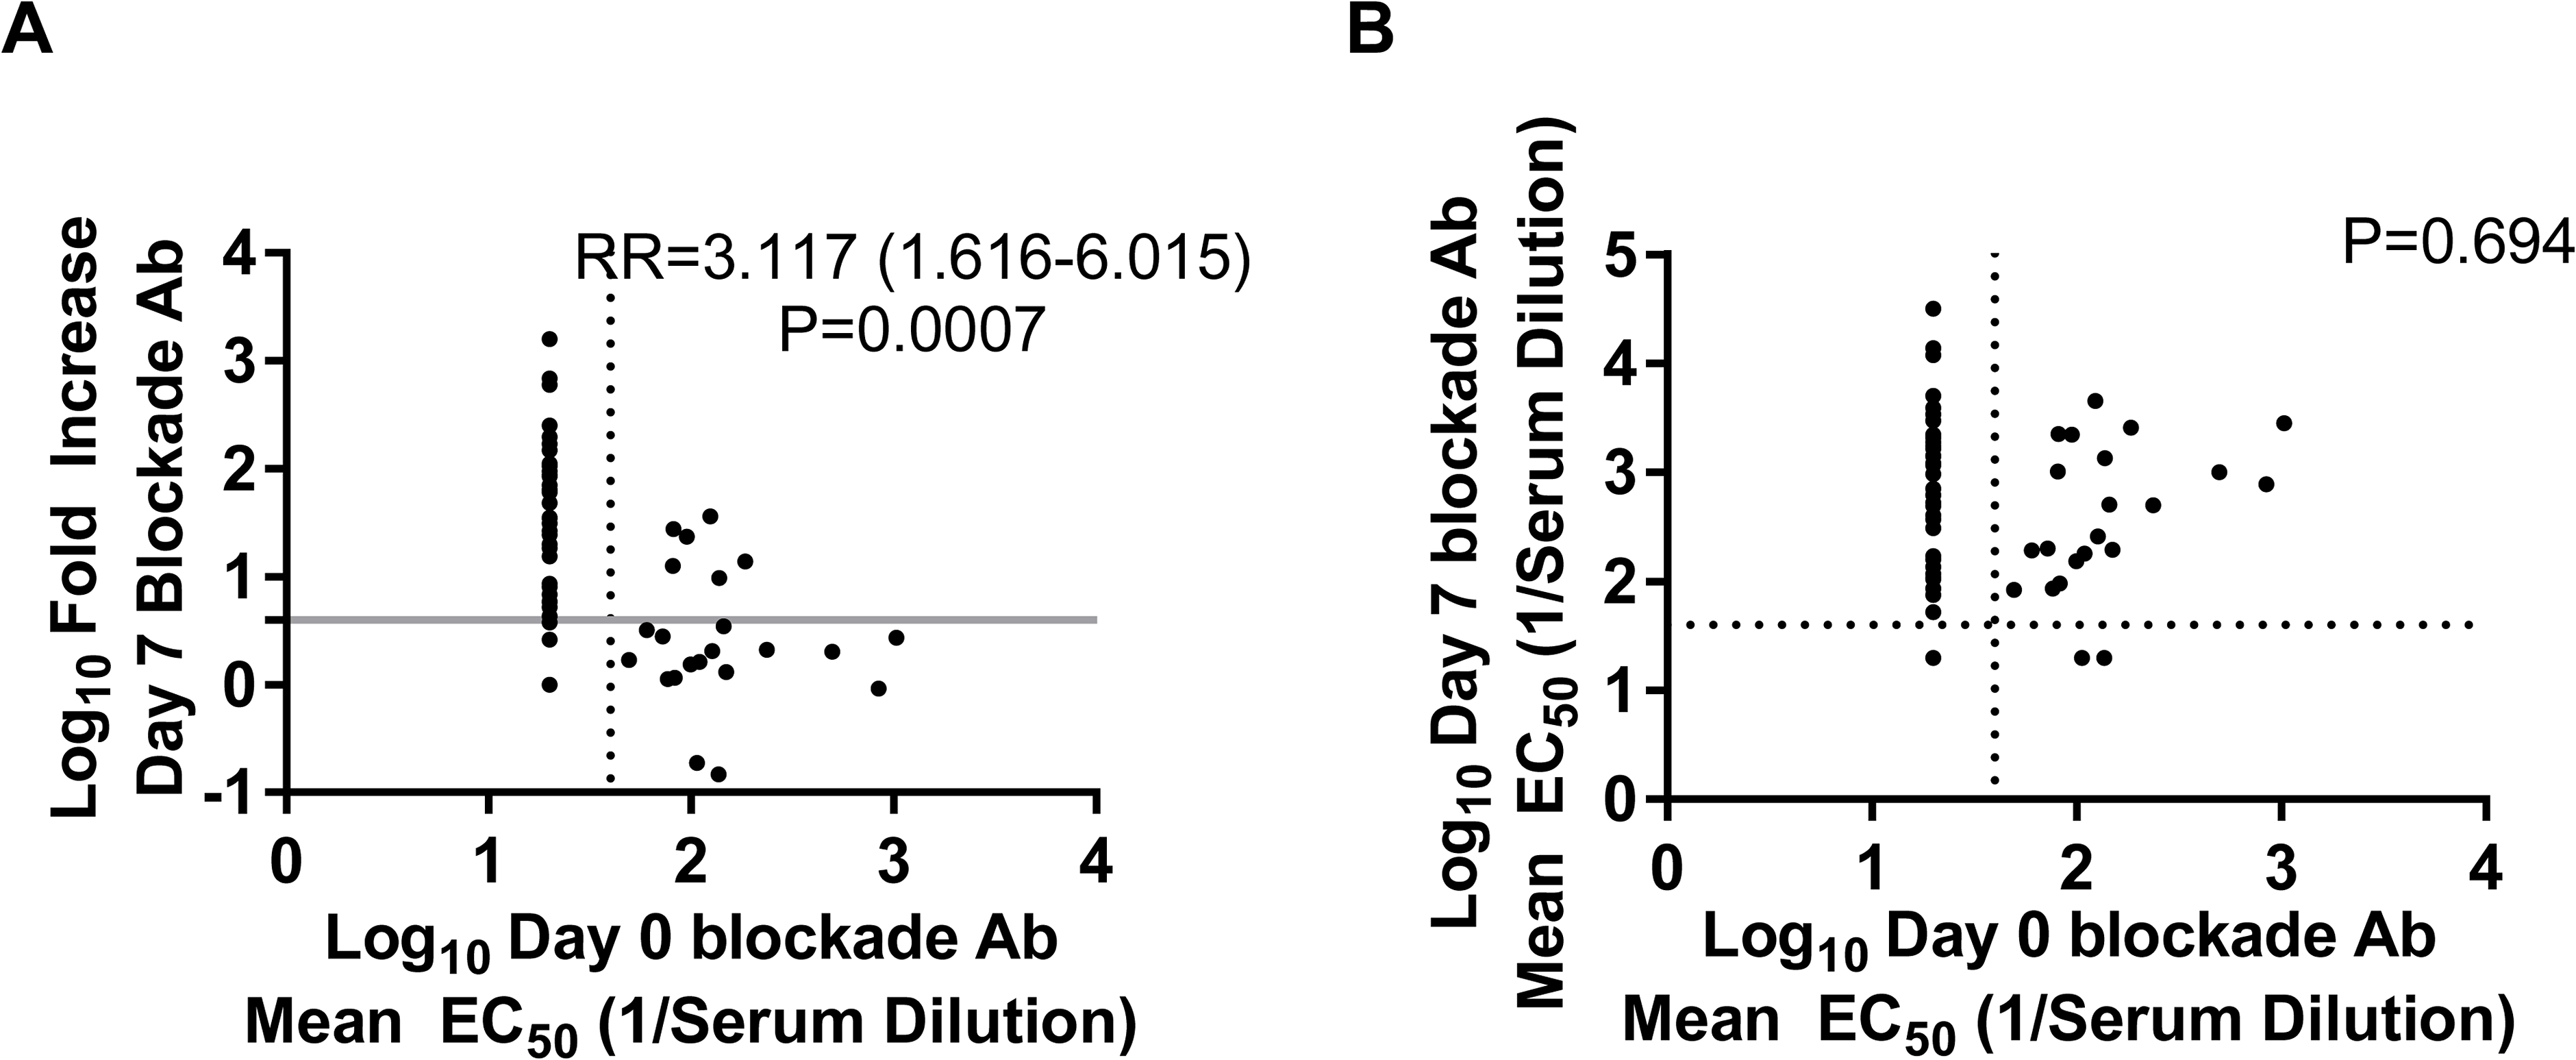 Day 0 blockade antibody titers below the assay limit of detection for any norovirus virus-like particle are predictive of a ≥4-fold increase, but not overall blockade Ab titer, at day 7.